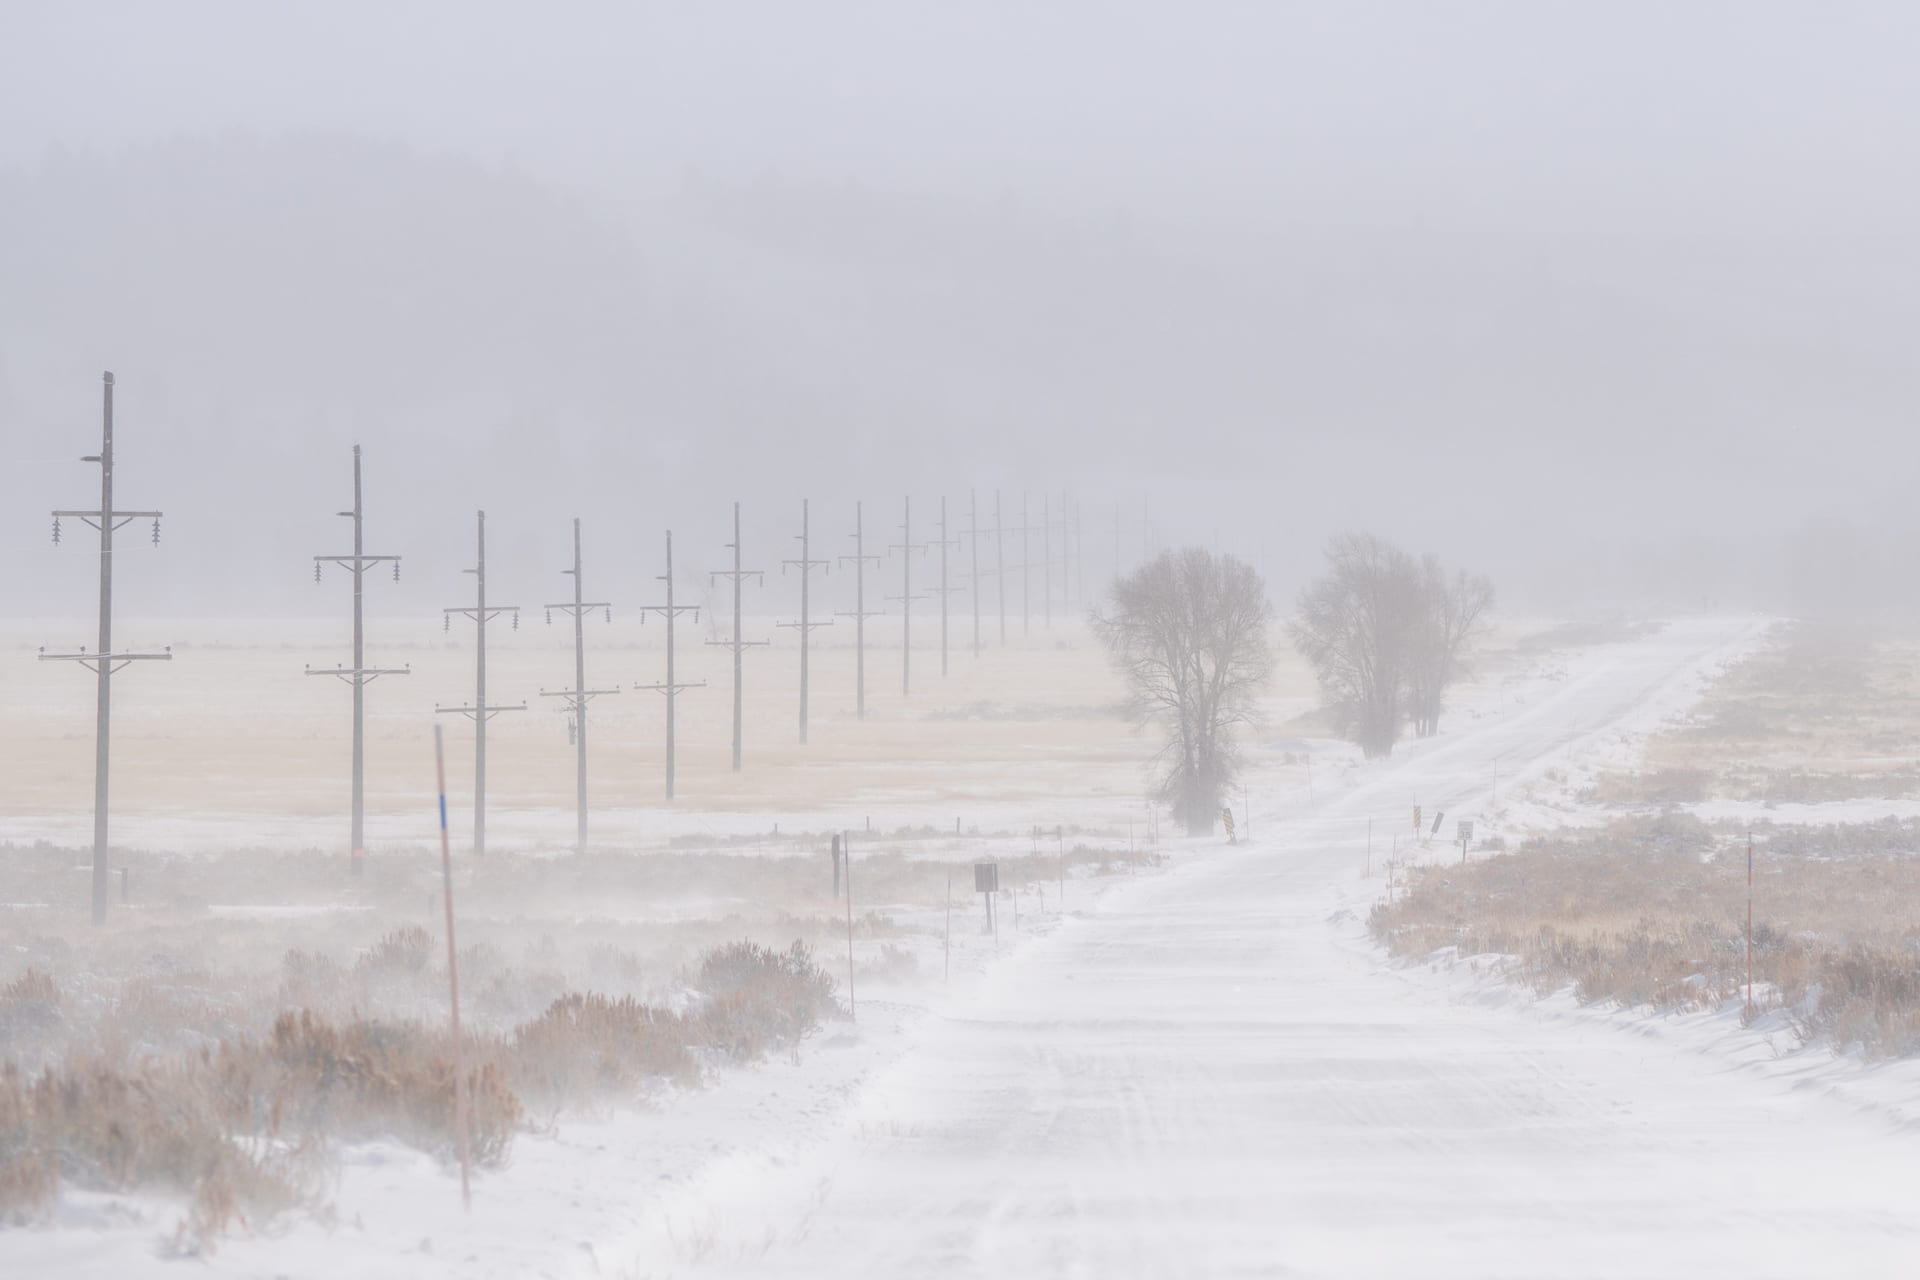 Low visibility on a road with snow.